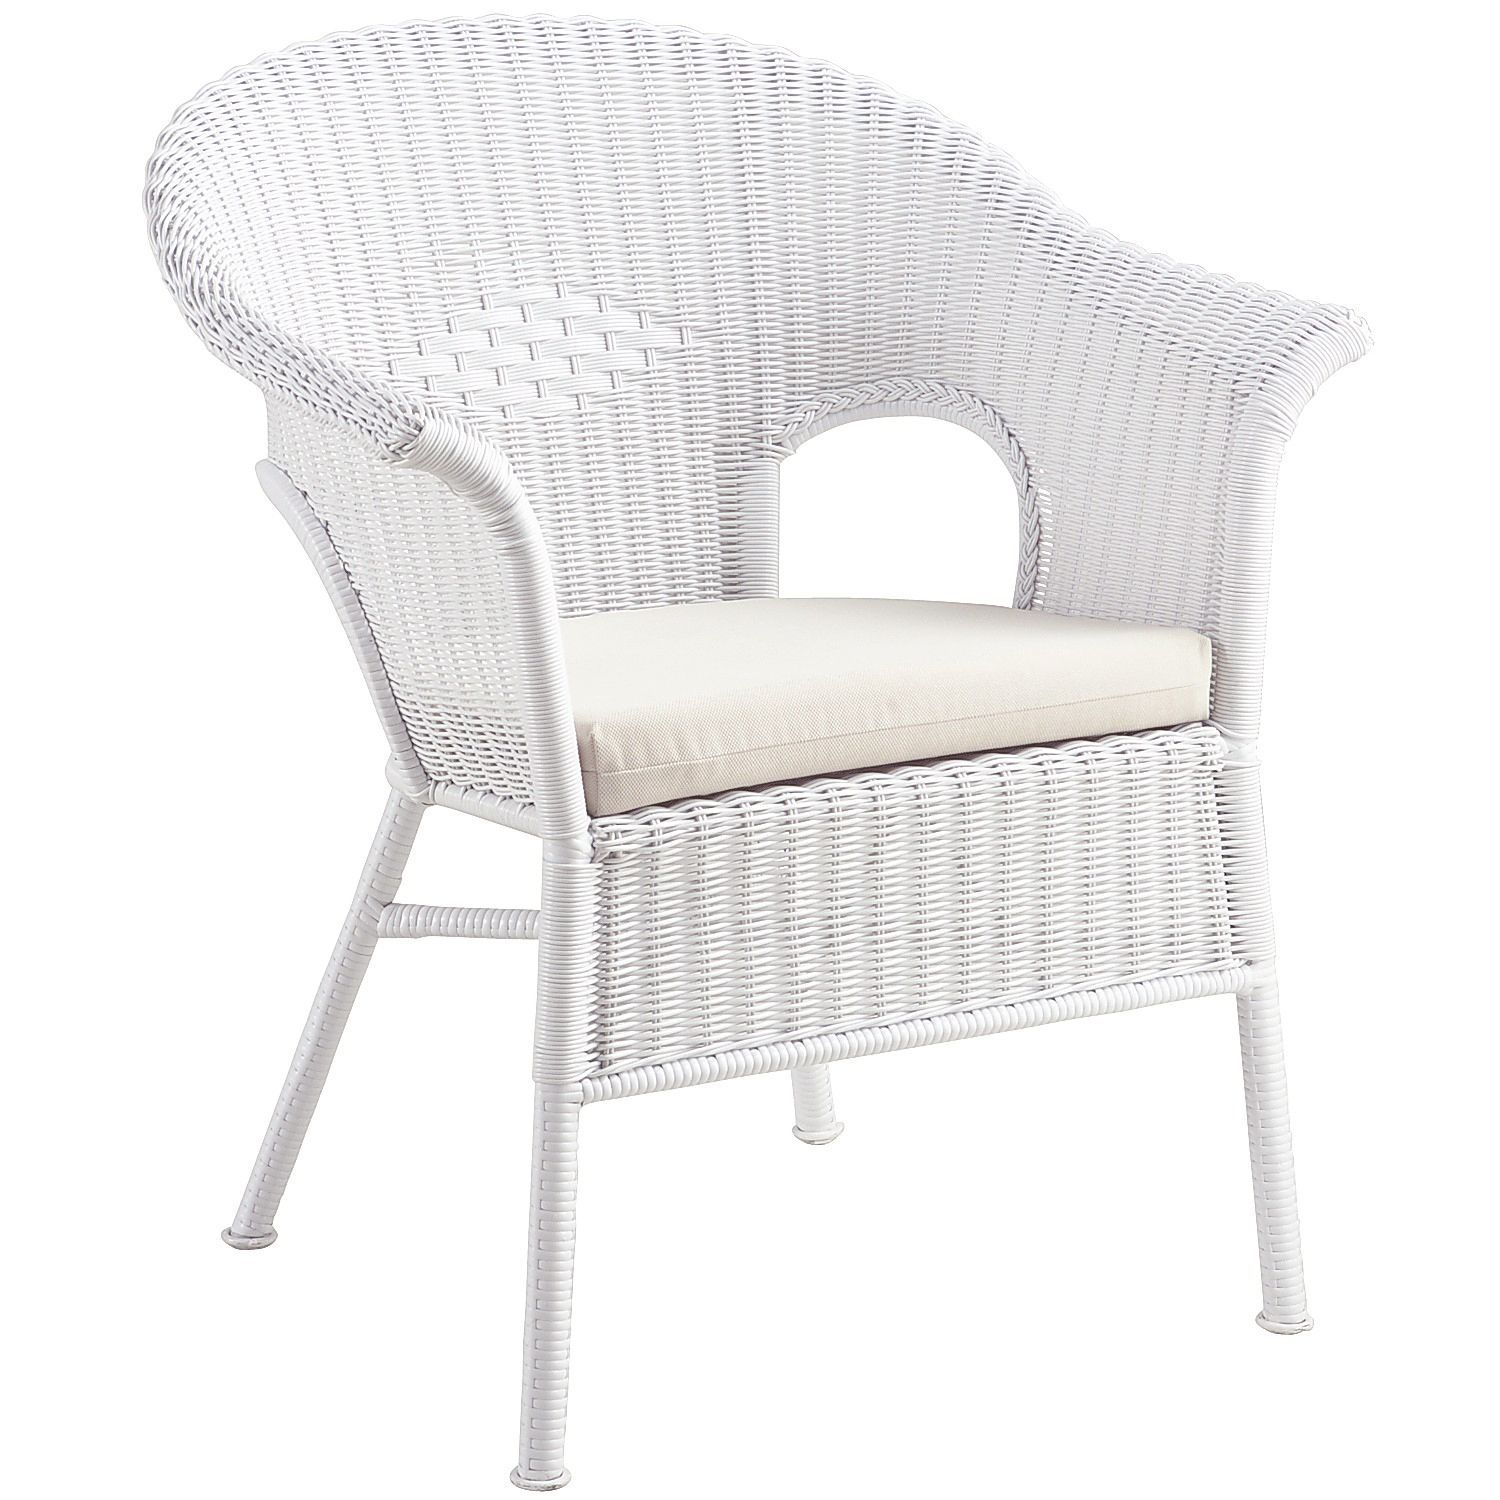 White Outside Chairs Captain For Center Console Boats Casbah Stacking Chair Outdoor Seating Wicker